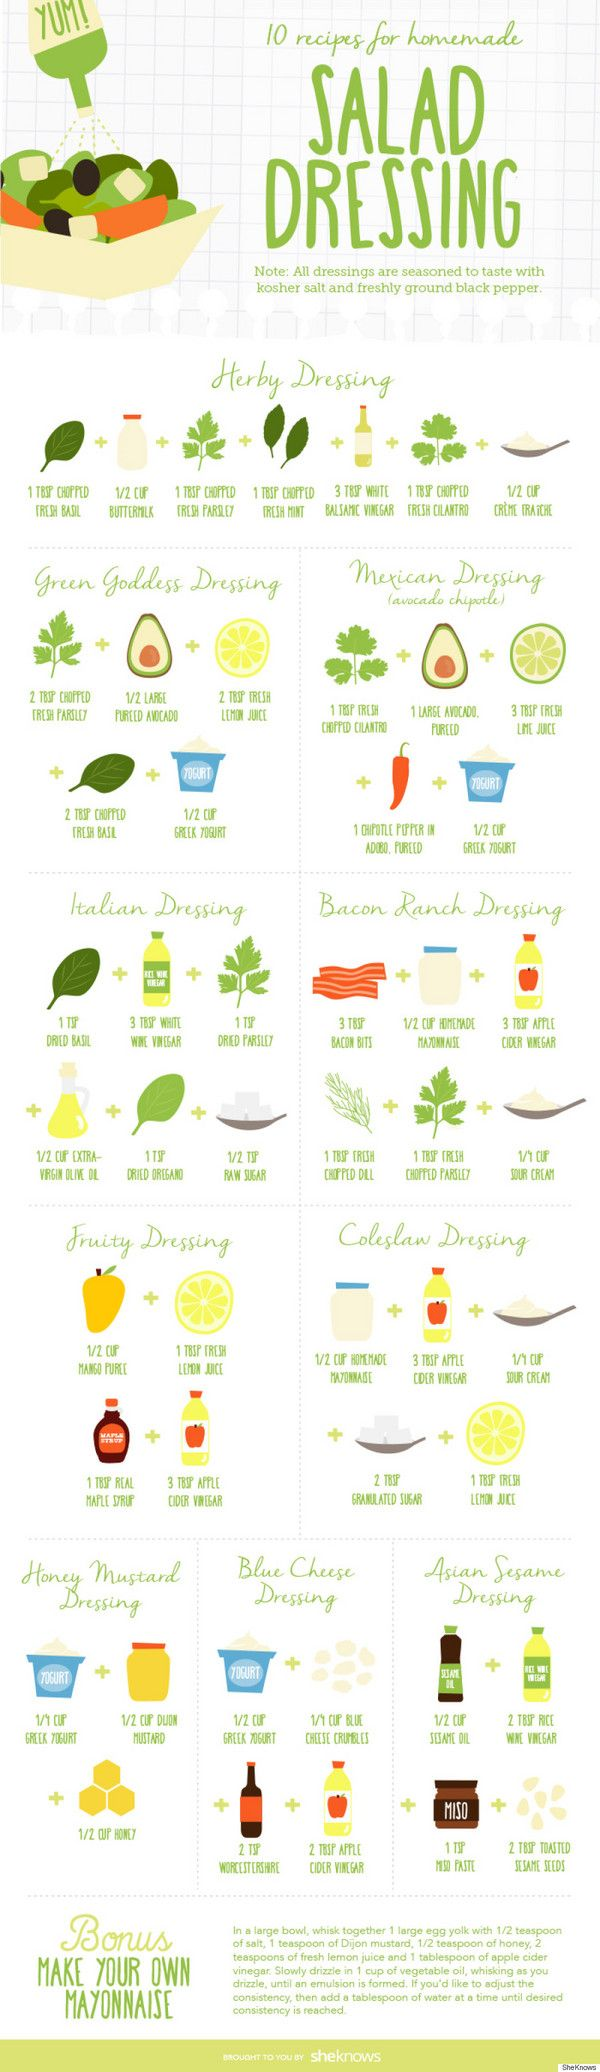 Great guide for making salad dressings!